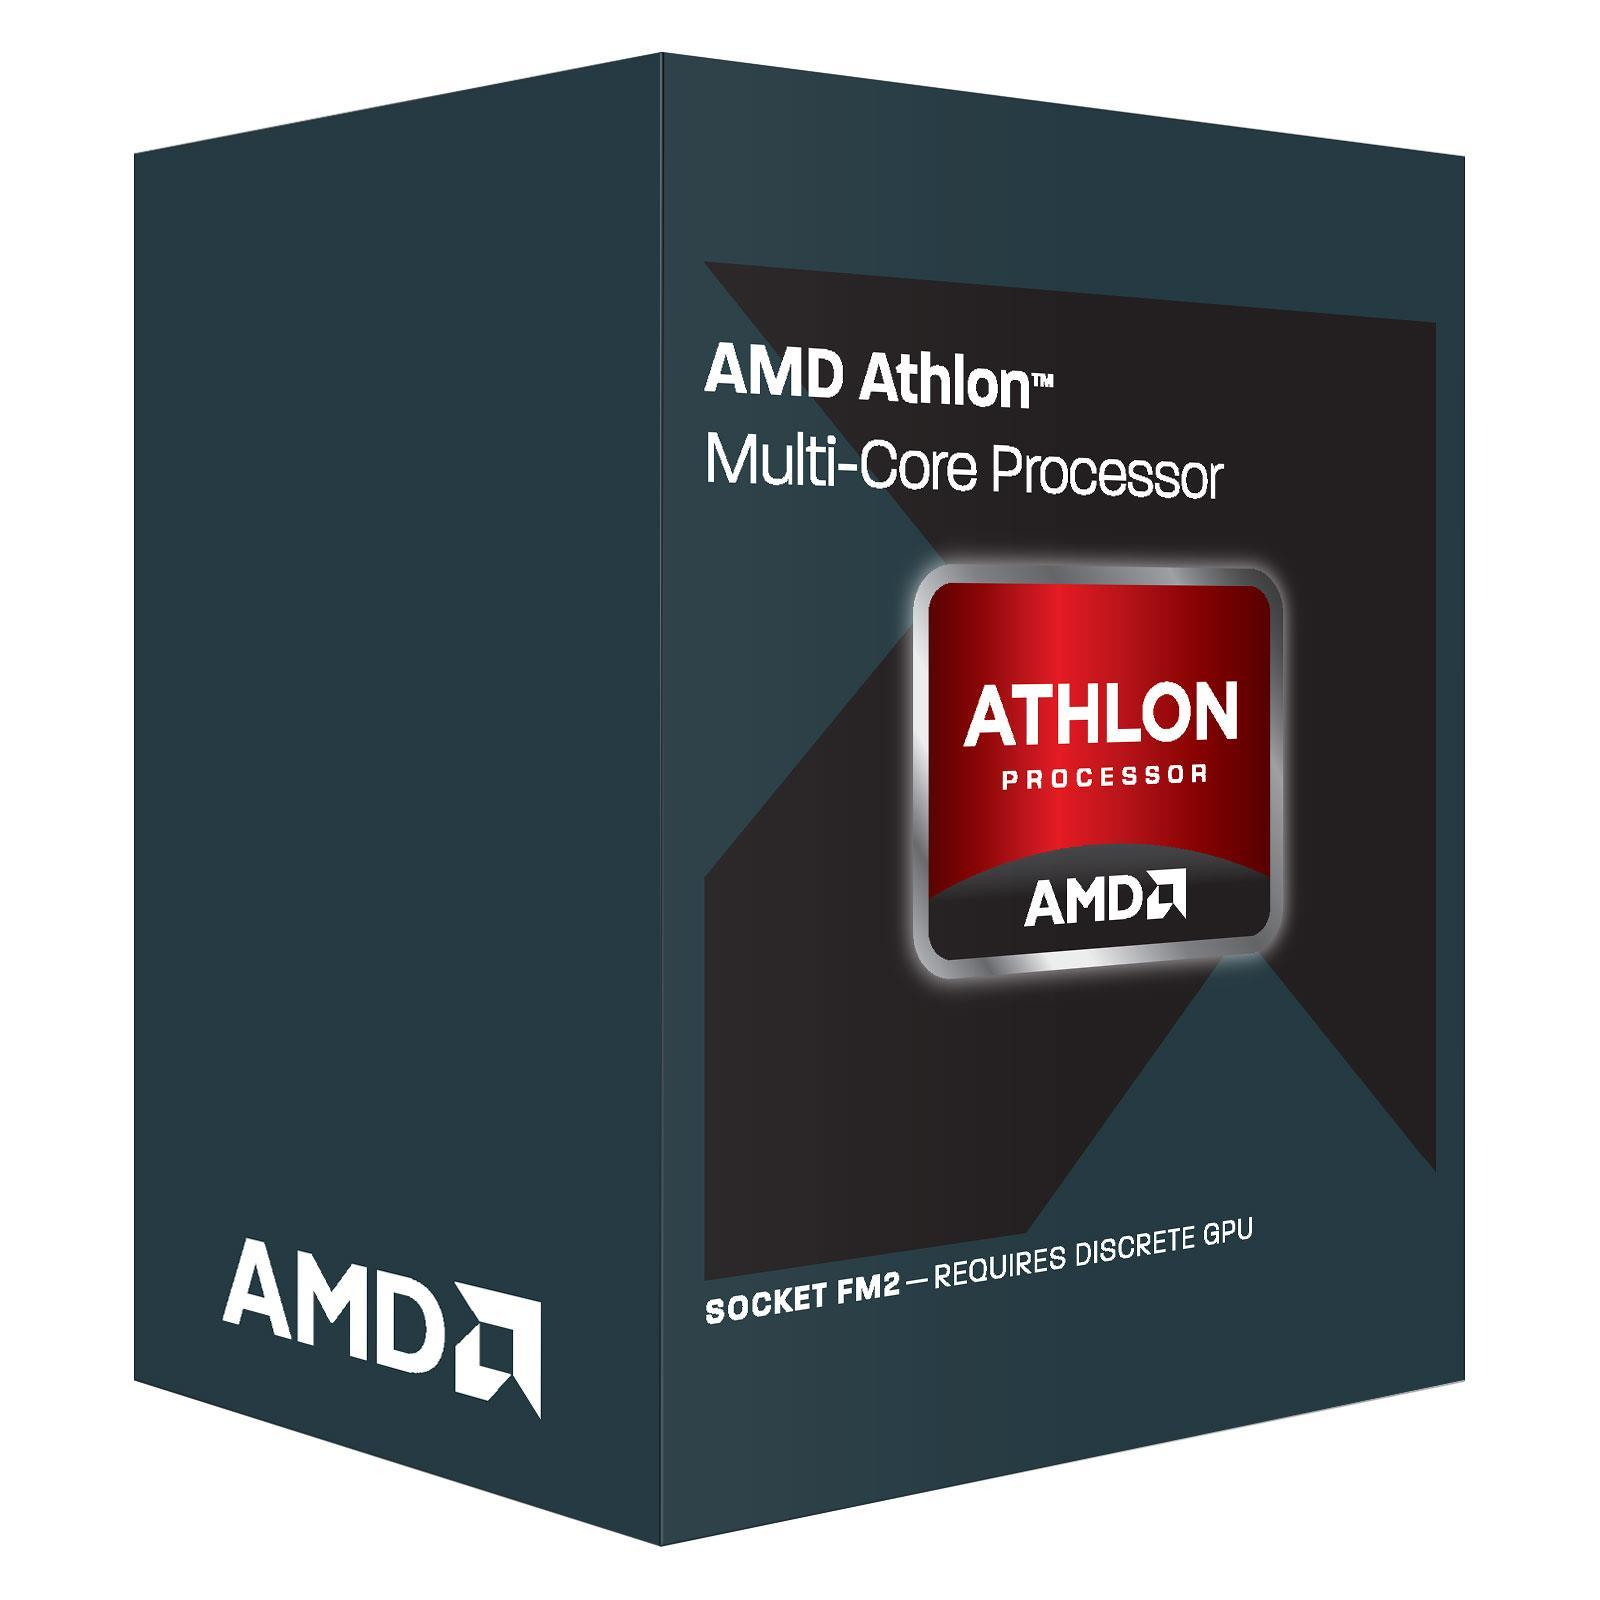 AMD Athlon II X4 750K Black Edition Quad Core Processor